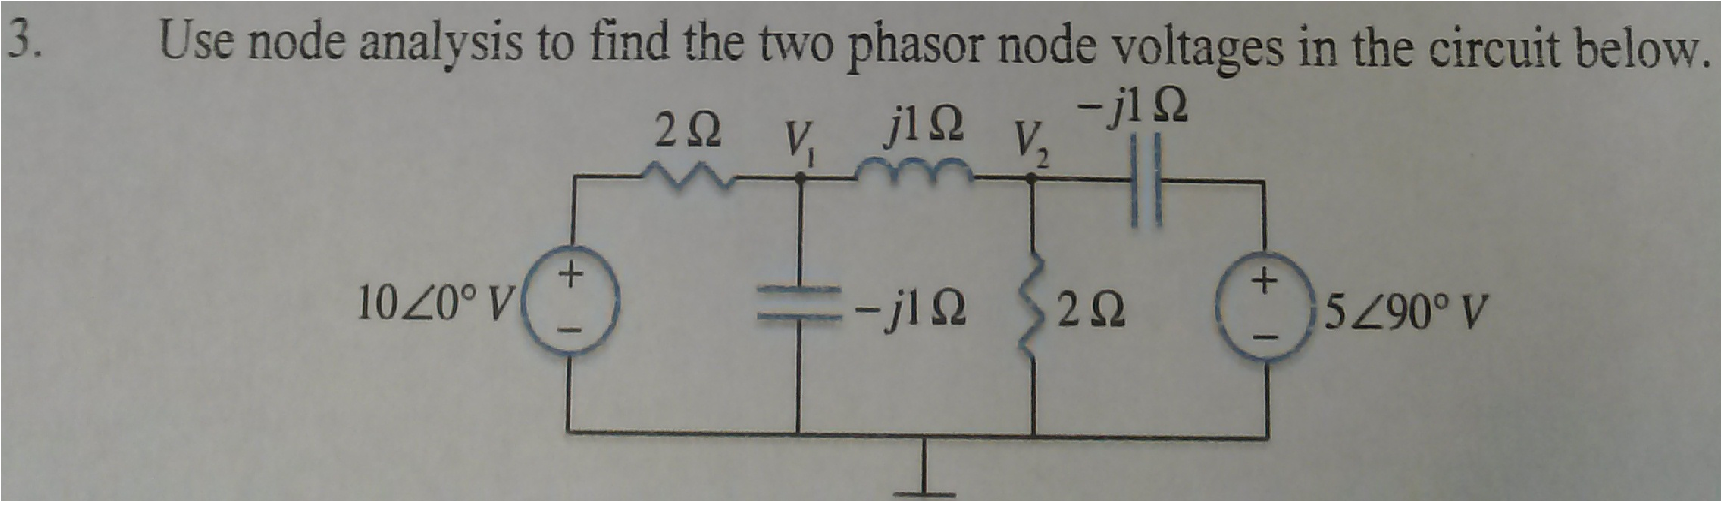 Use node analysis t find the two phasor node volta